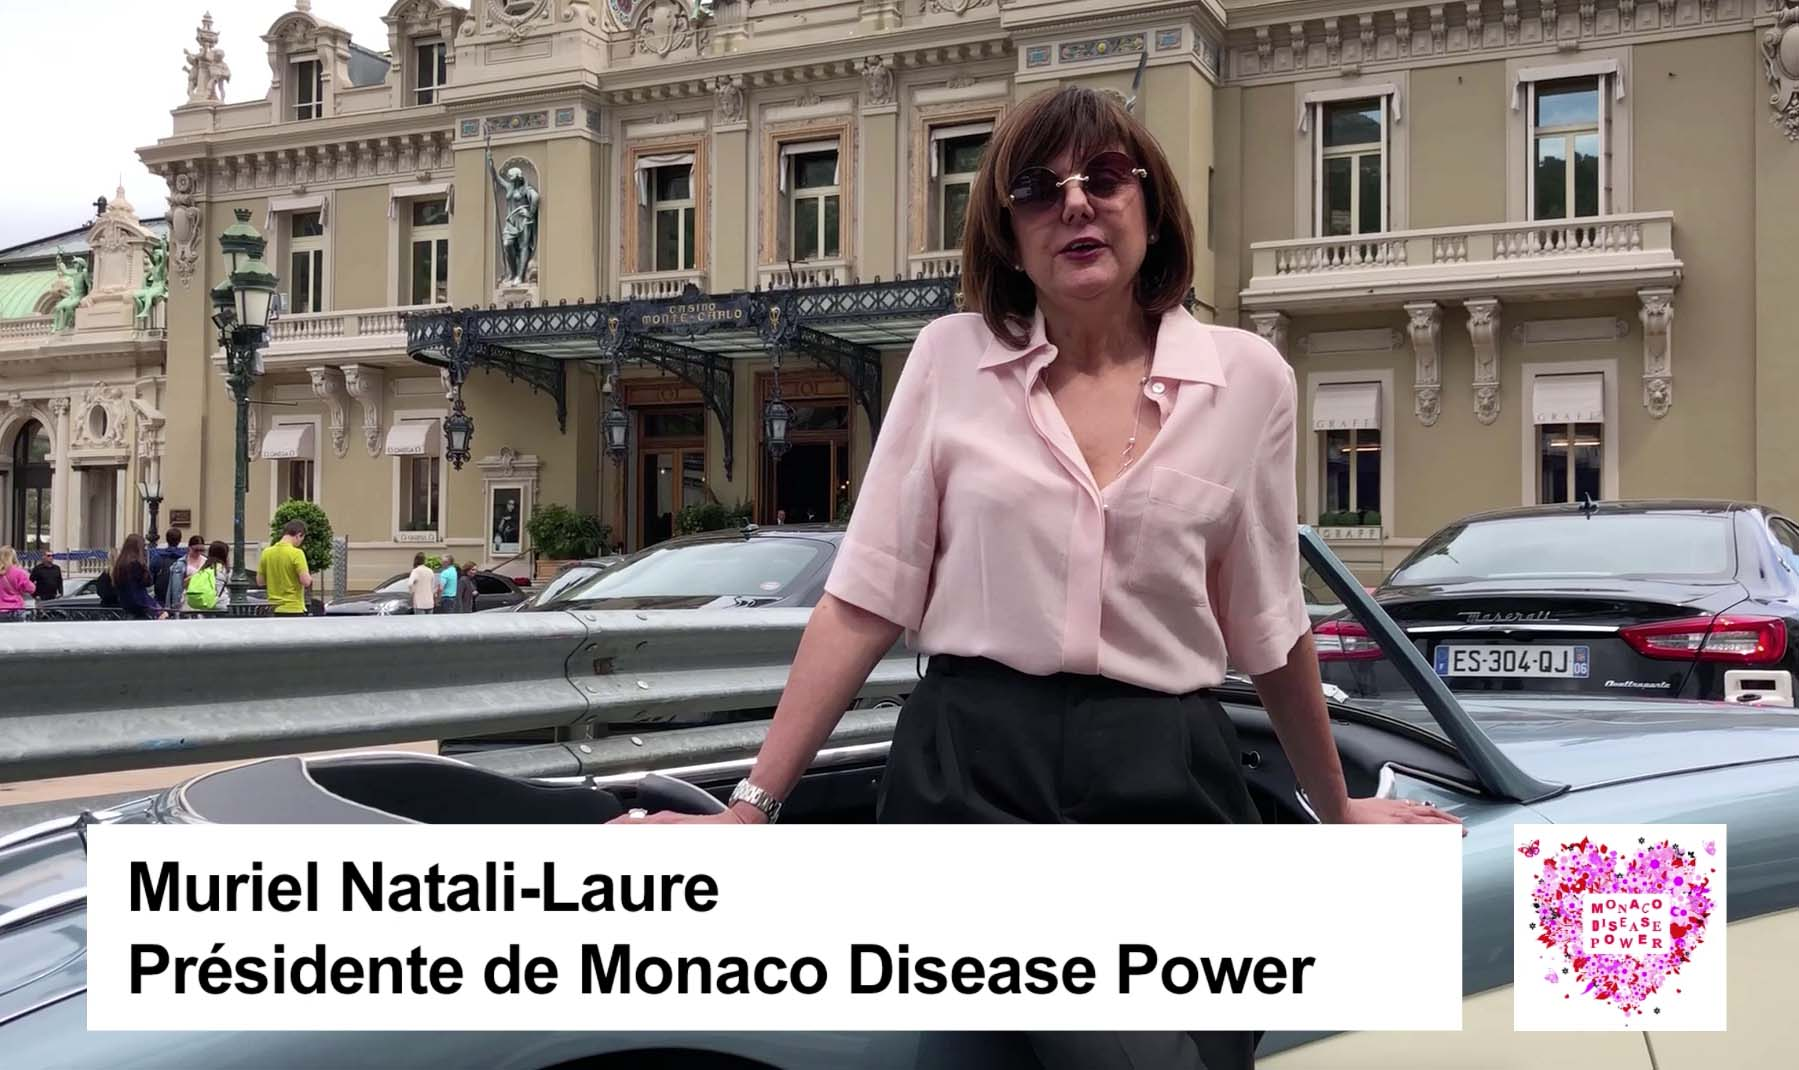 - Monaco Disease Power